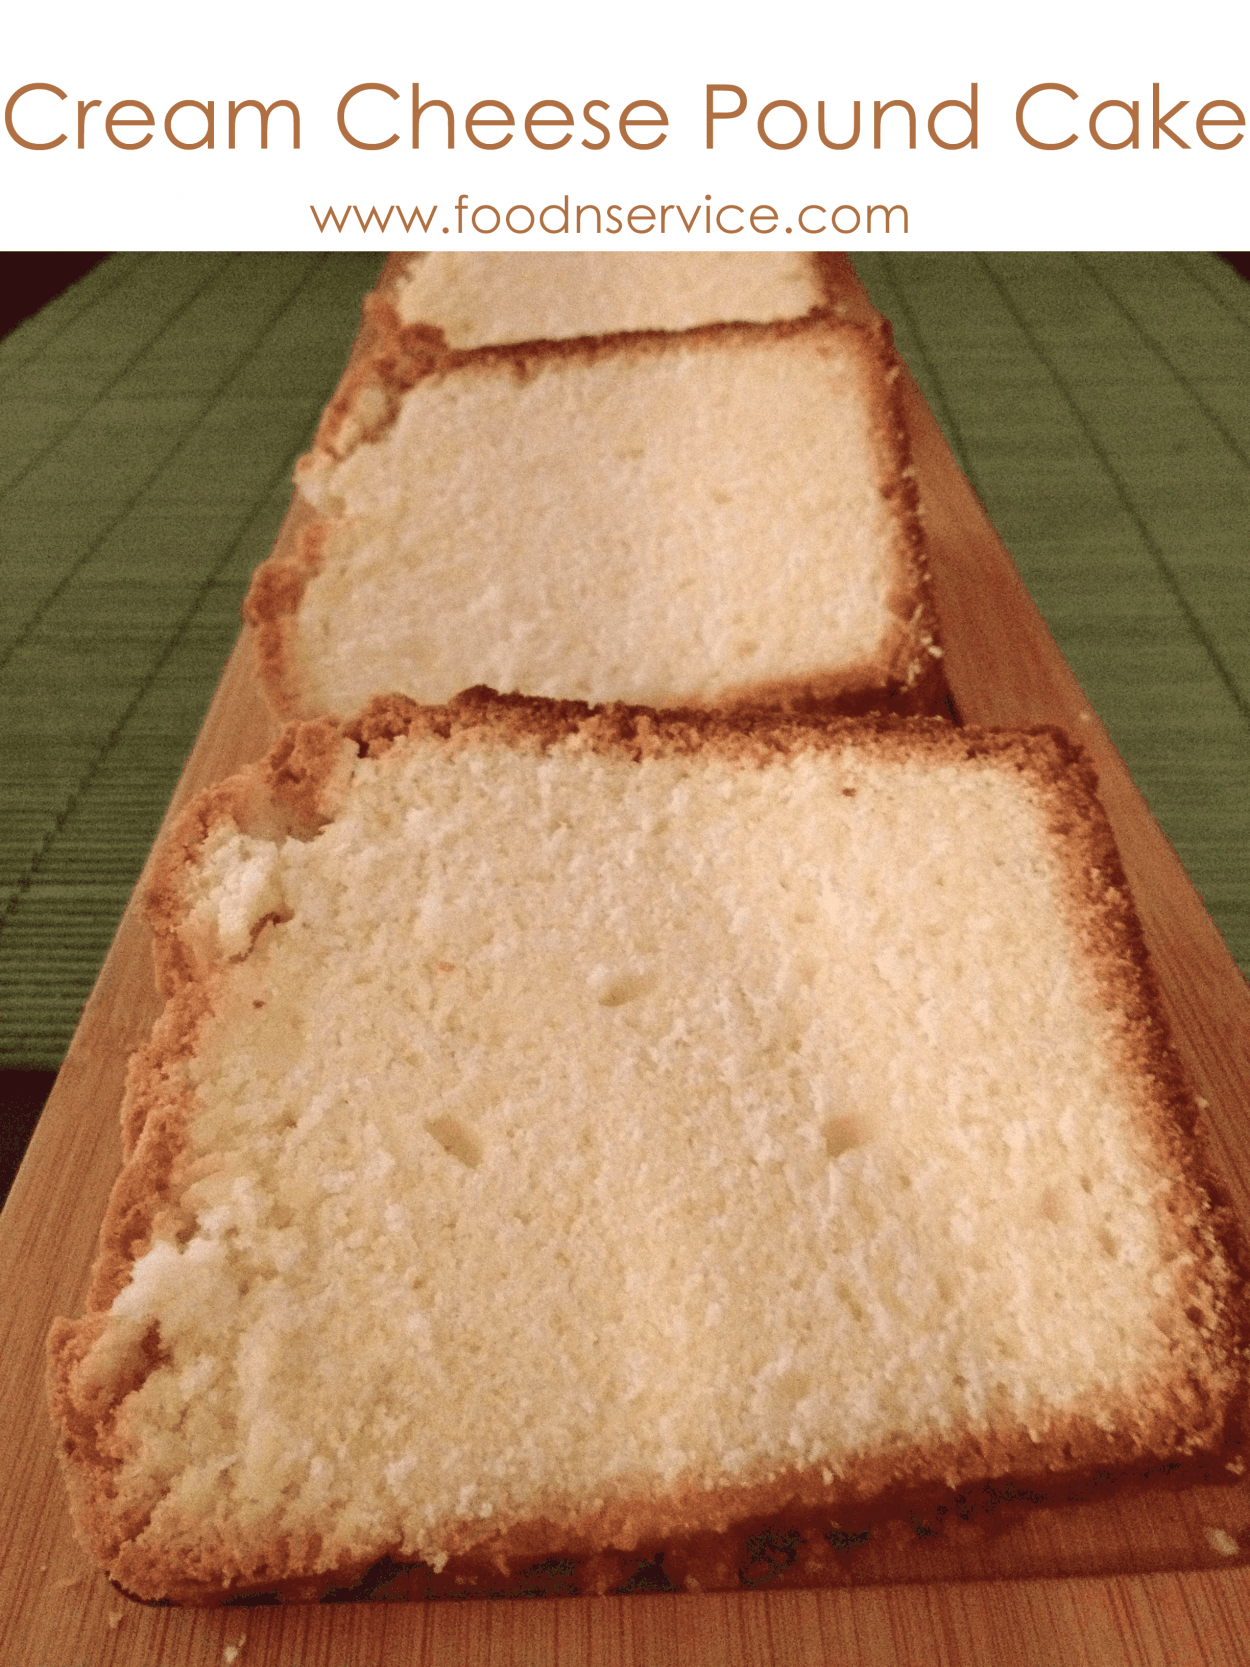 cream cheese pound cake recipe